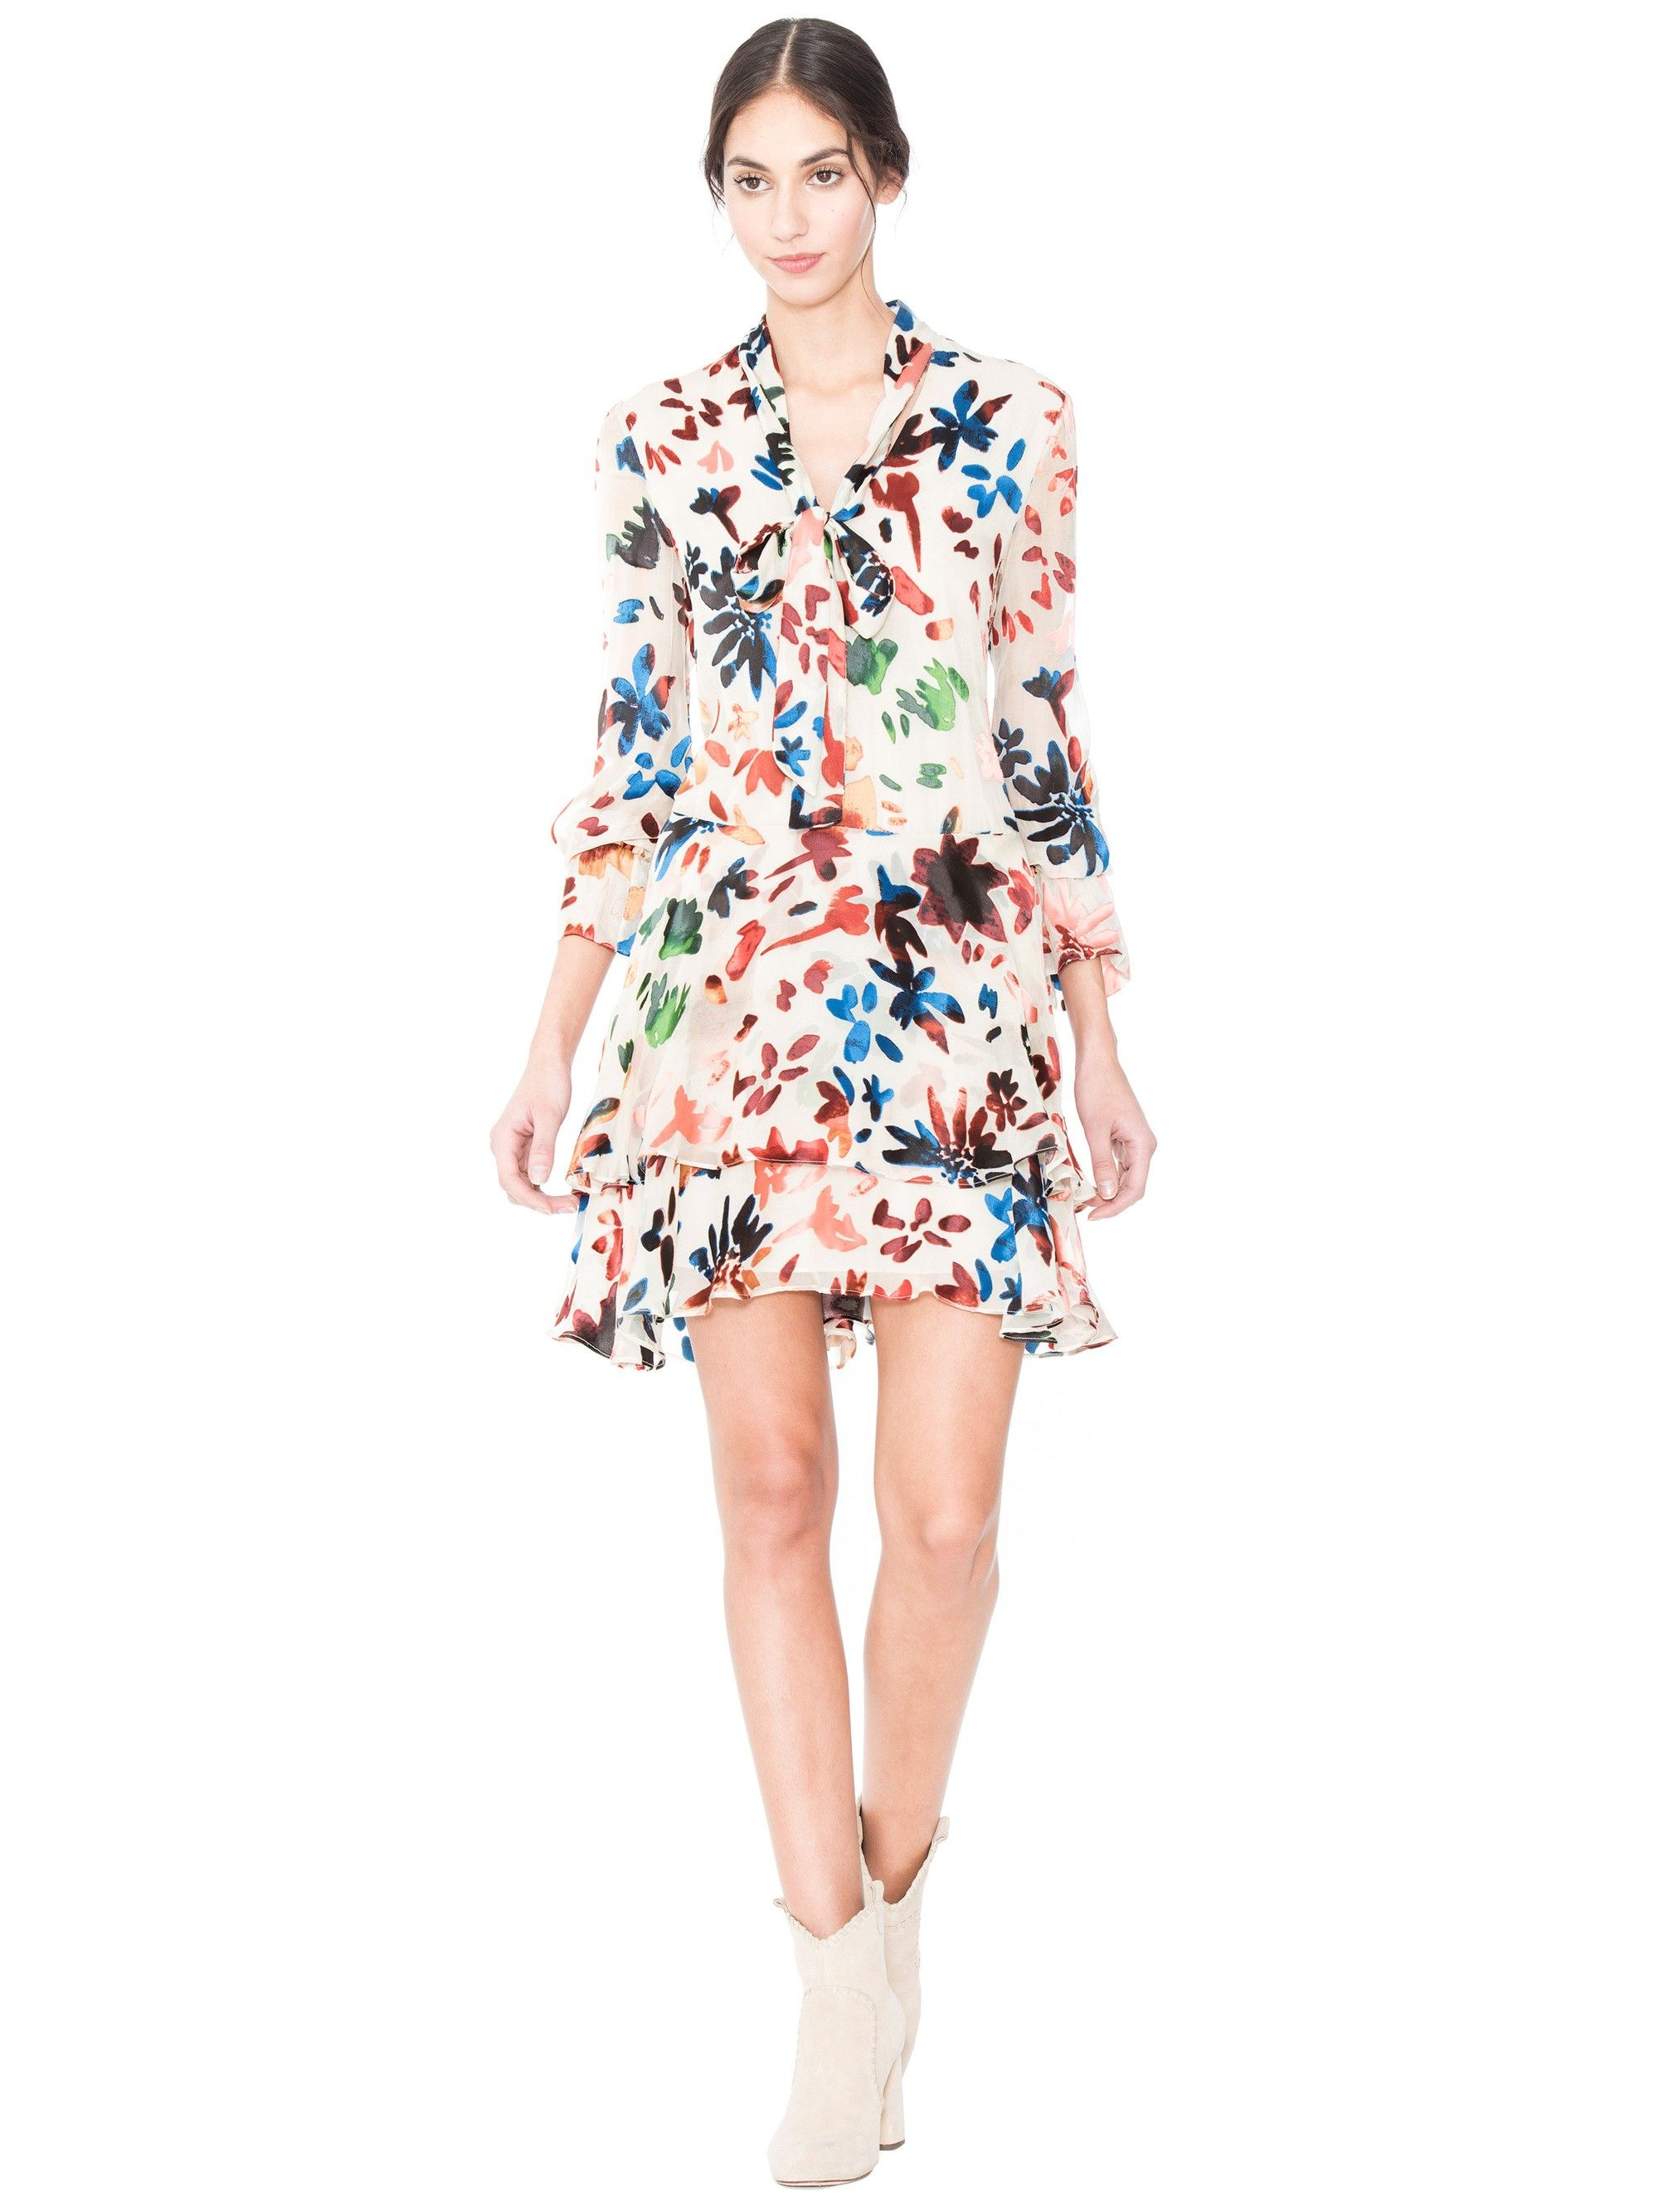 2452c0a37aa74 ALICE AND OLIVIA MOORE V NECK LAYERED SKIRT TUNIC DRESS - PRISMA FLORAL  BURNOUT.  aliceandolivia  cloth